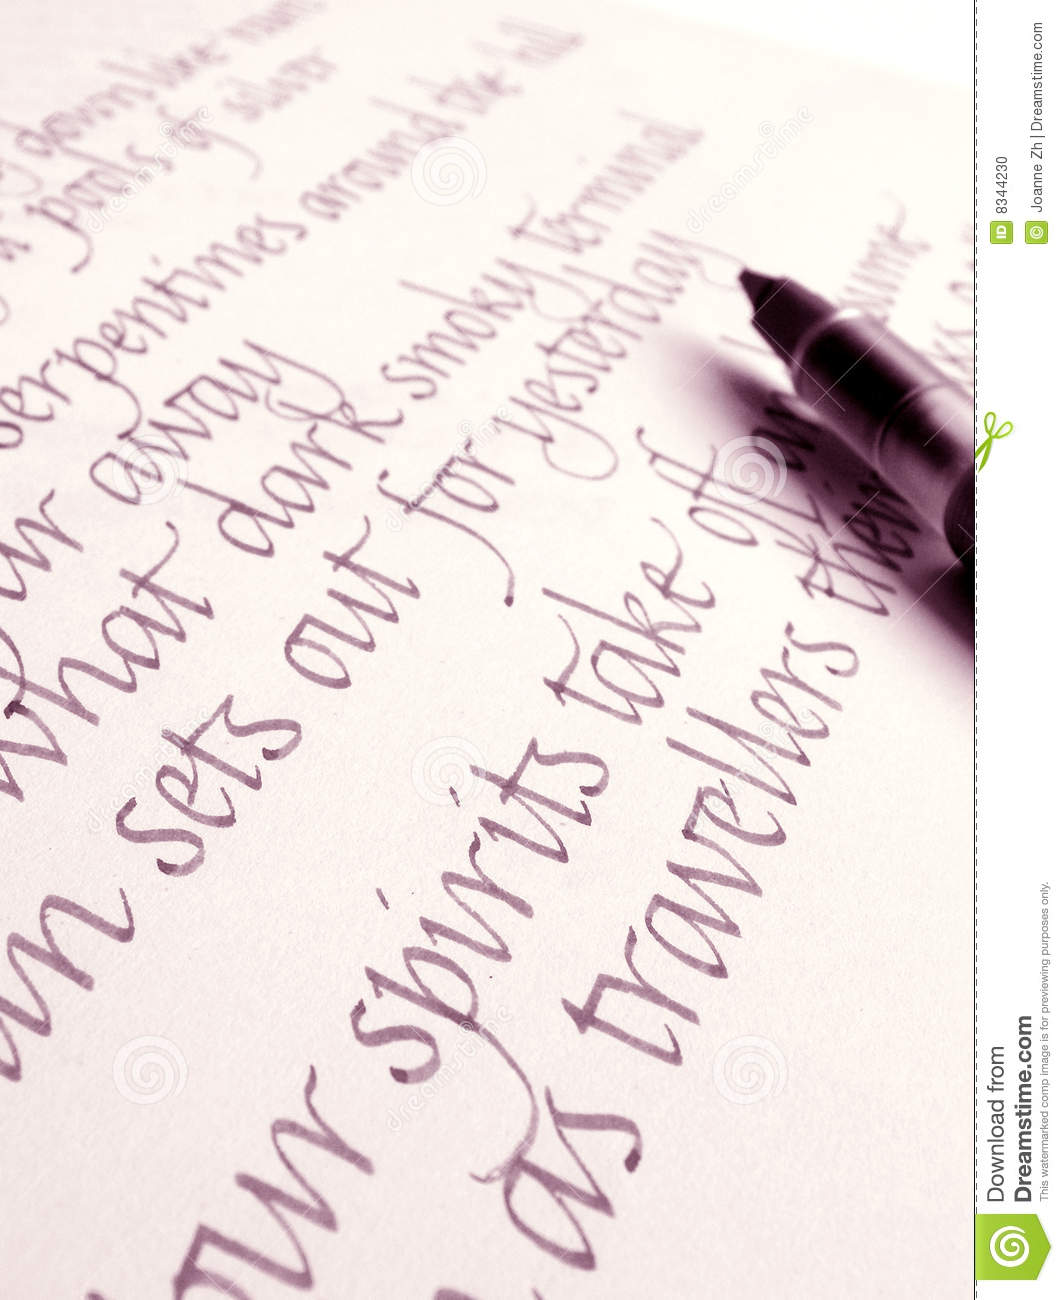 Italics handwriting calligraphy ink pen on paper stock Handwriting calligraphy